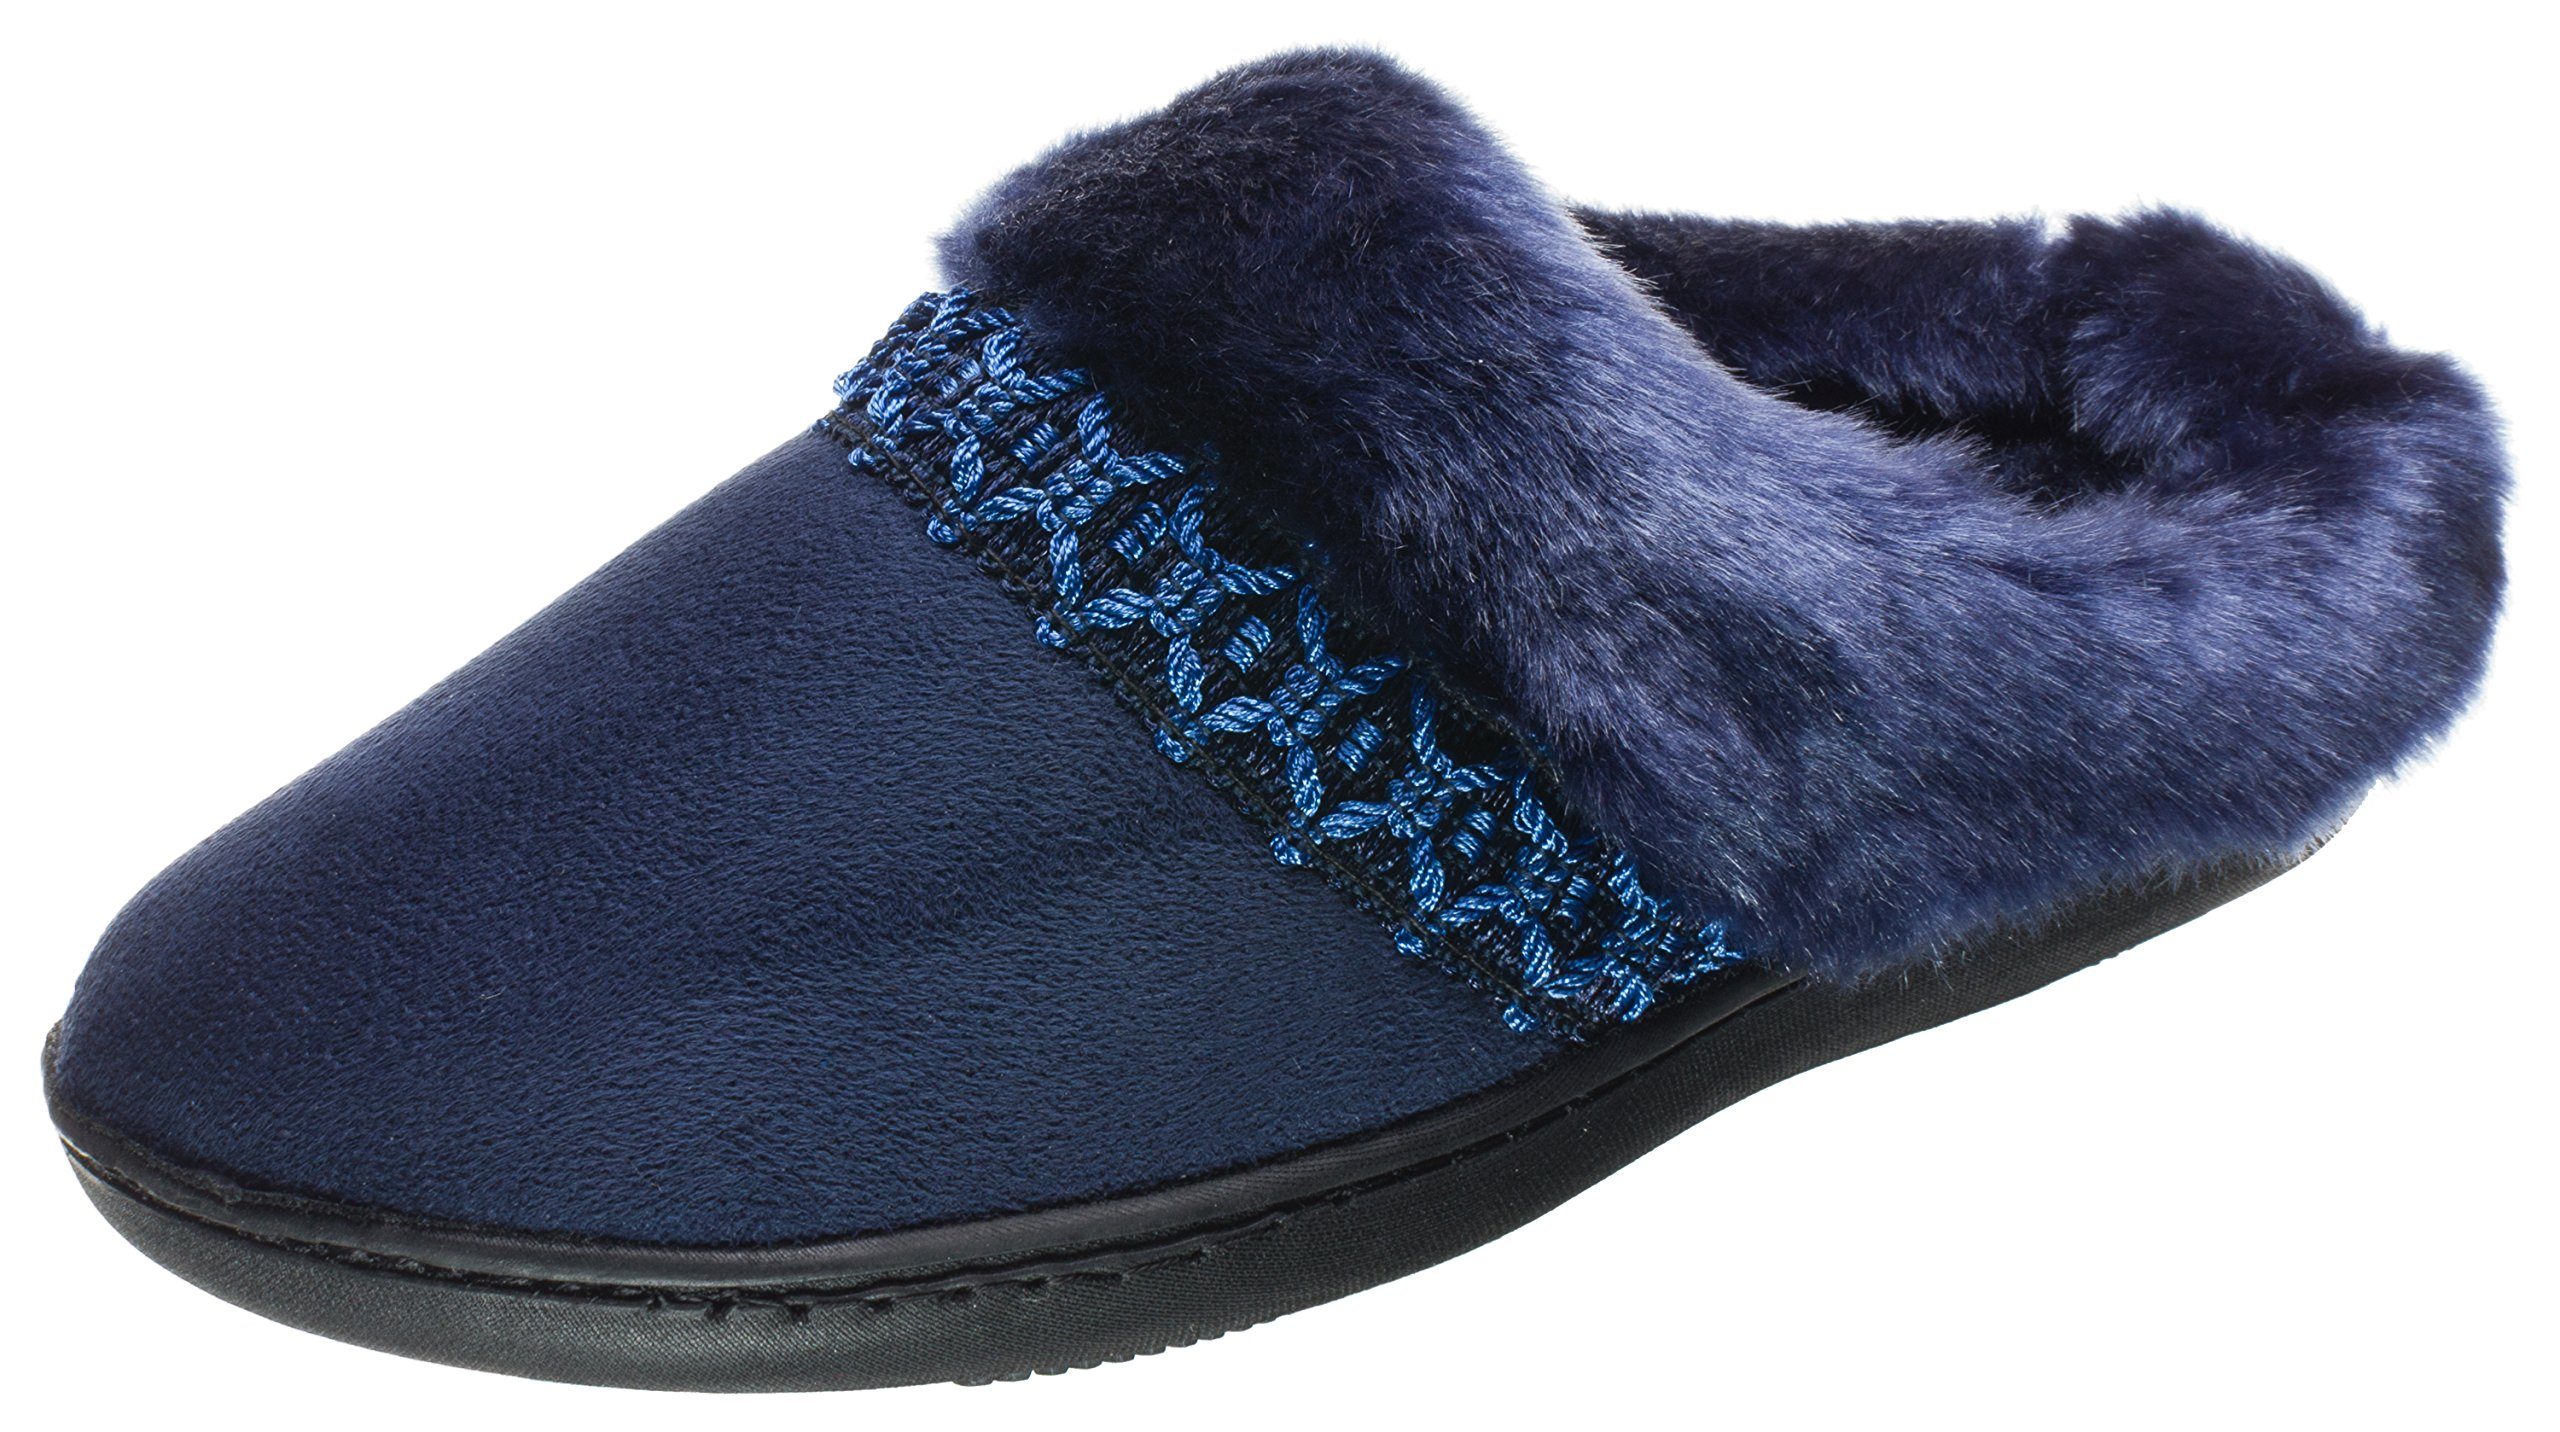 ISOTONER Women's Microsuede Nola Hoodback Navy Blue Medium 7.5-8